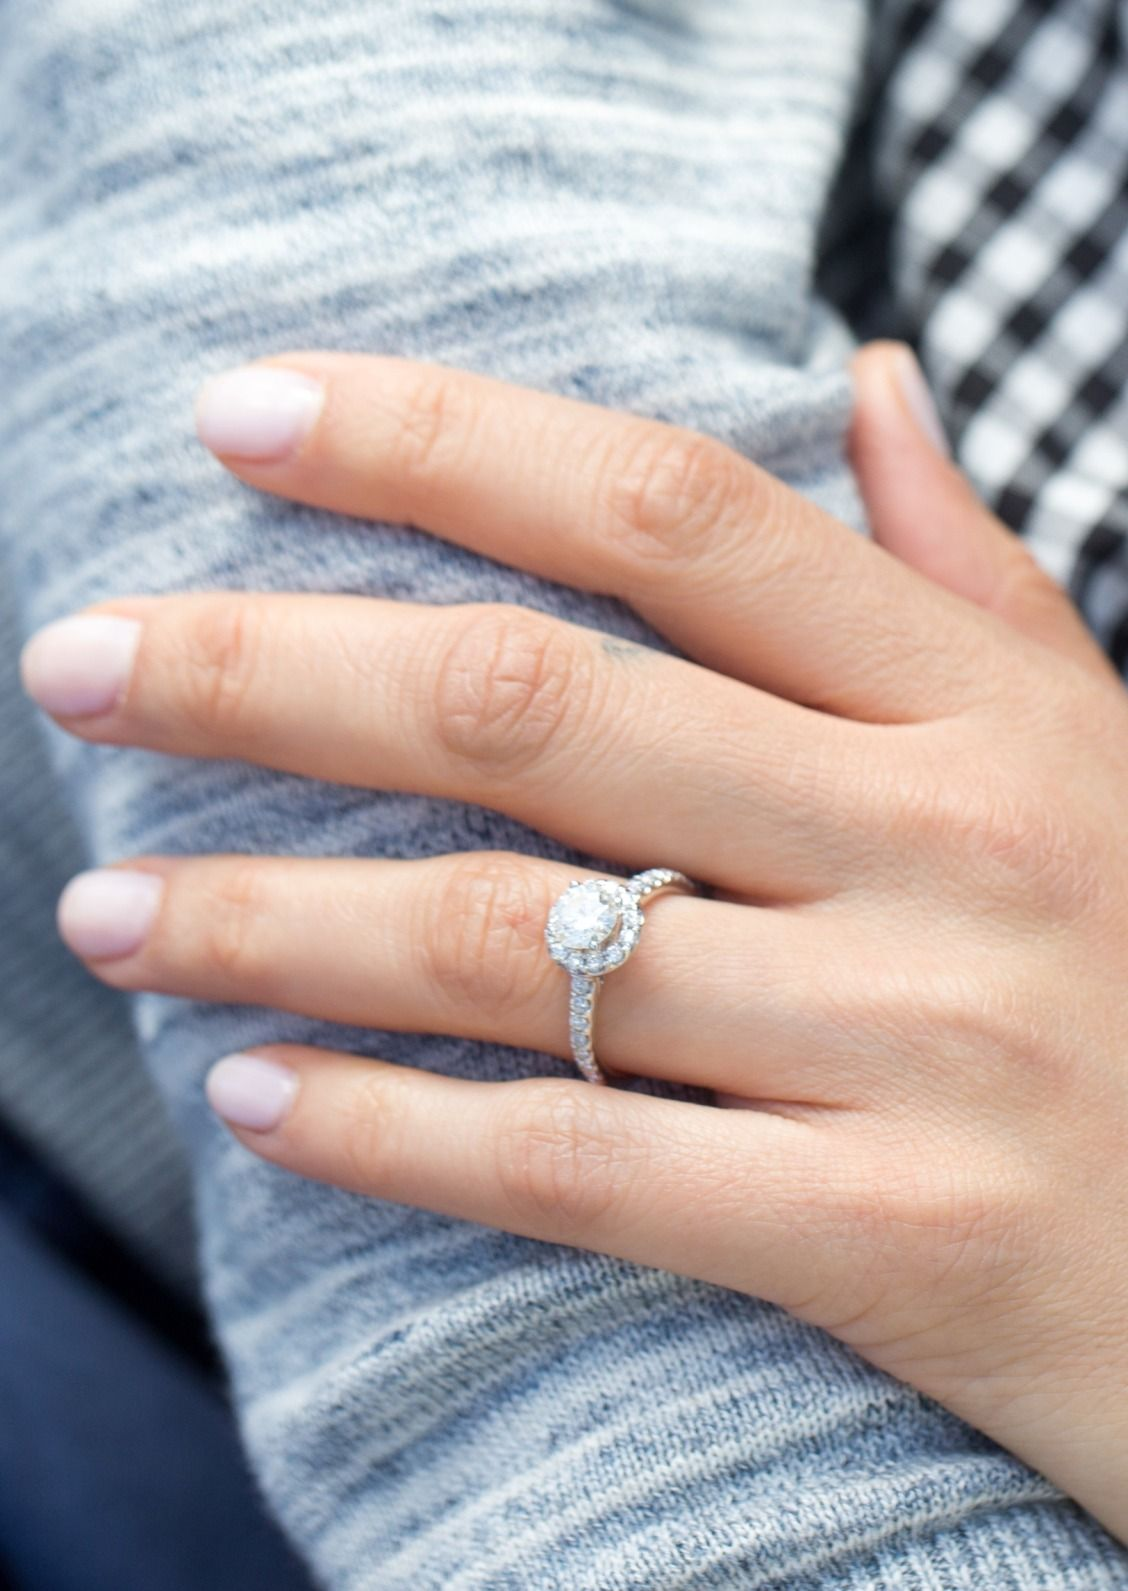 She Ll Want To Hold Onto This Tolkowsky Diamond Halo Engagement Ring Foreve Round Halo Engagement Rings Tolkowsky Engagement Rings Halo Diamond Engagement Ring